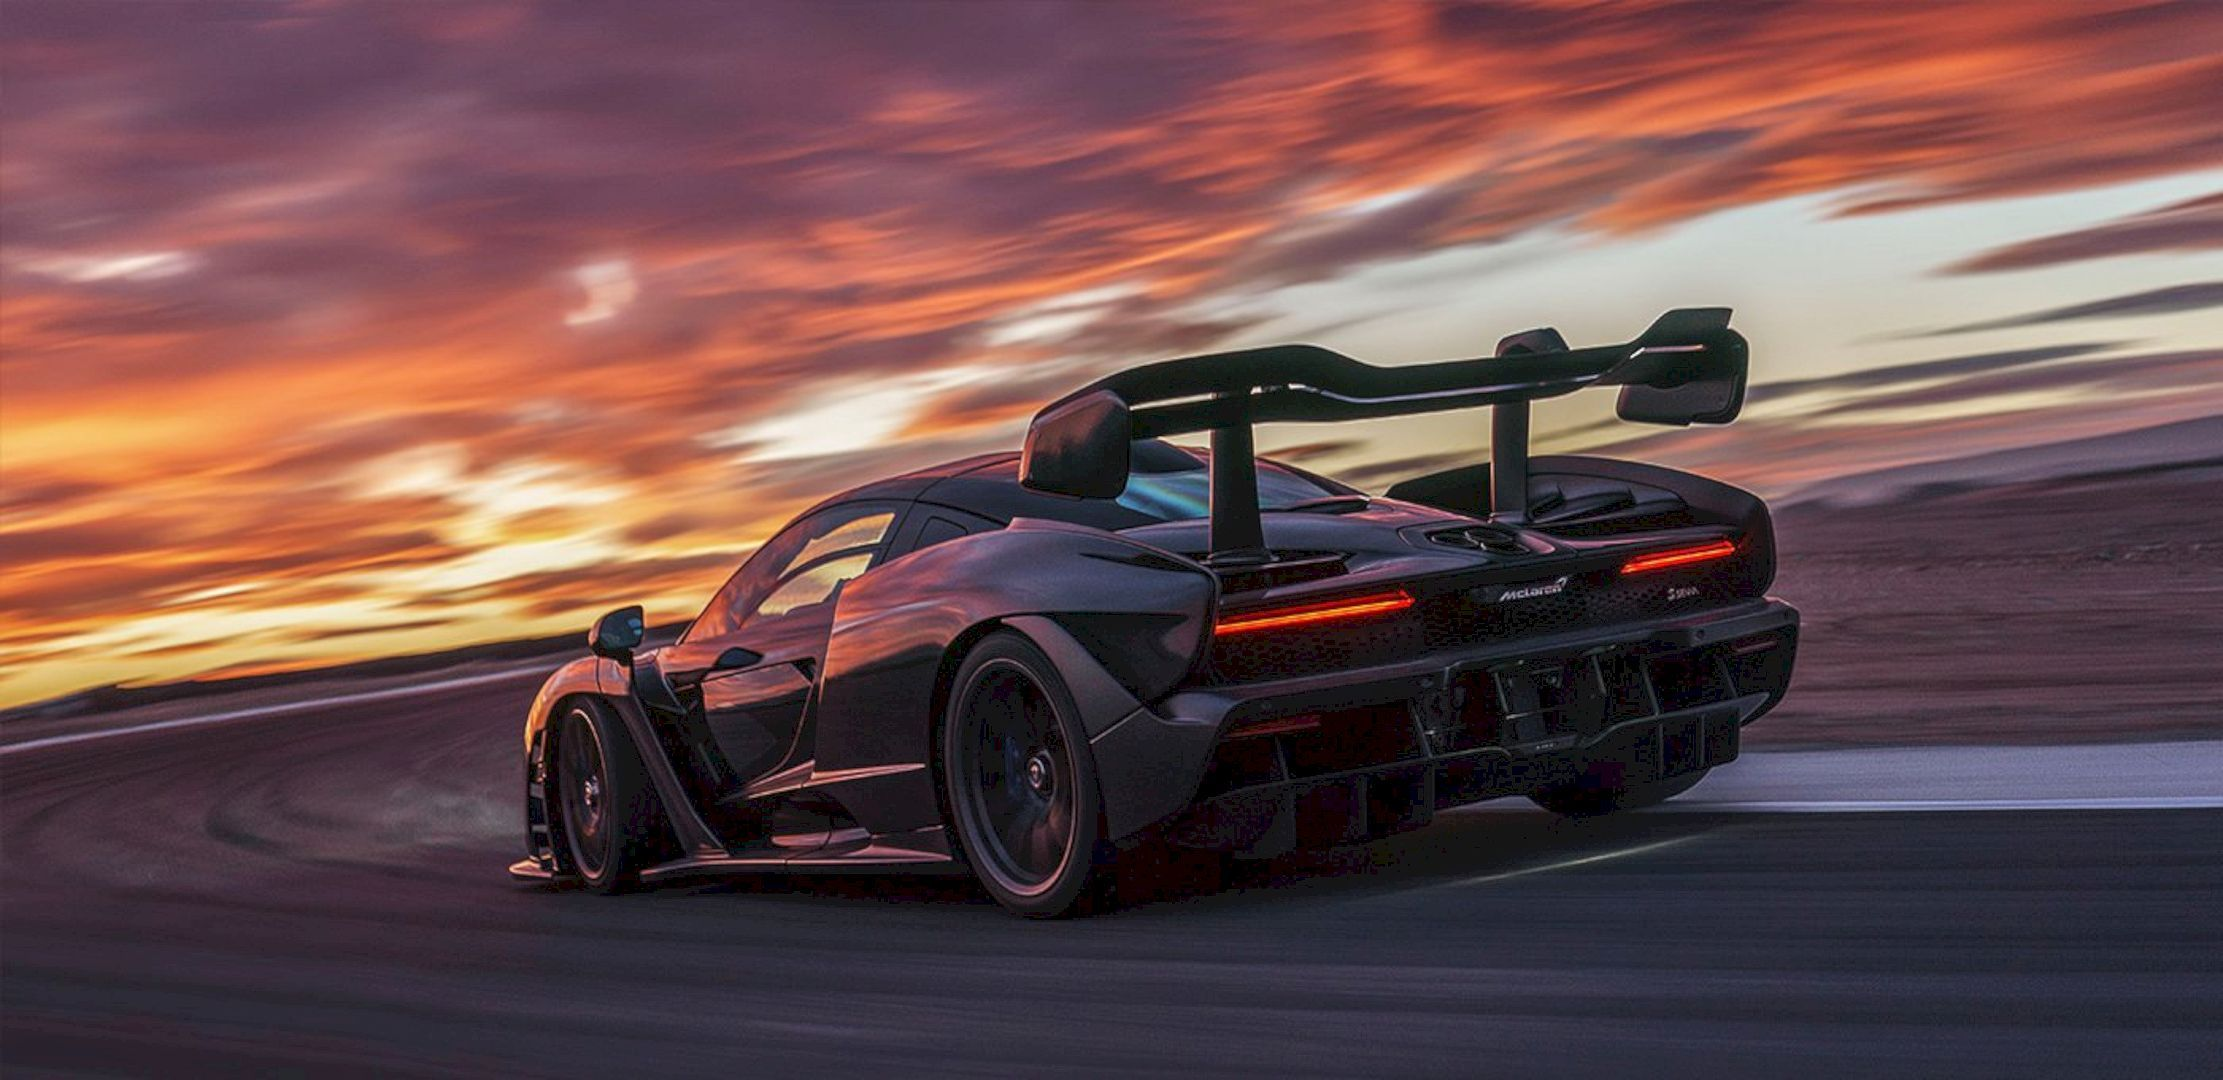 Behold For The Upcoming Of The Mclaren Senna Challenge The Impossible Car Wallpapers Senna Mclaren Cars